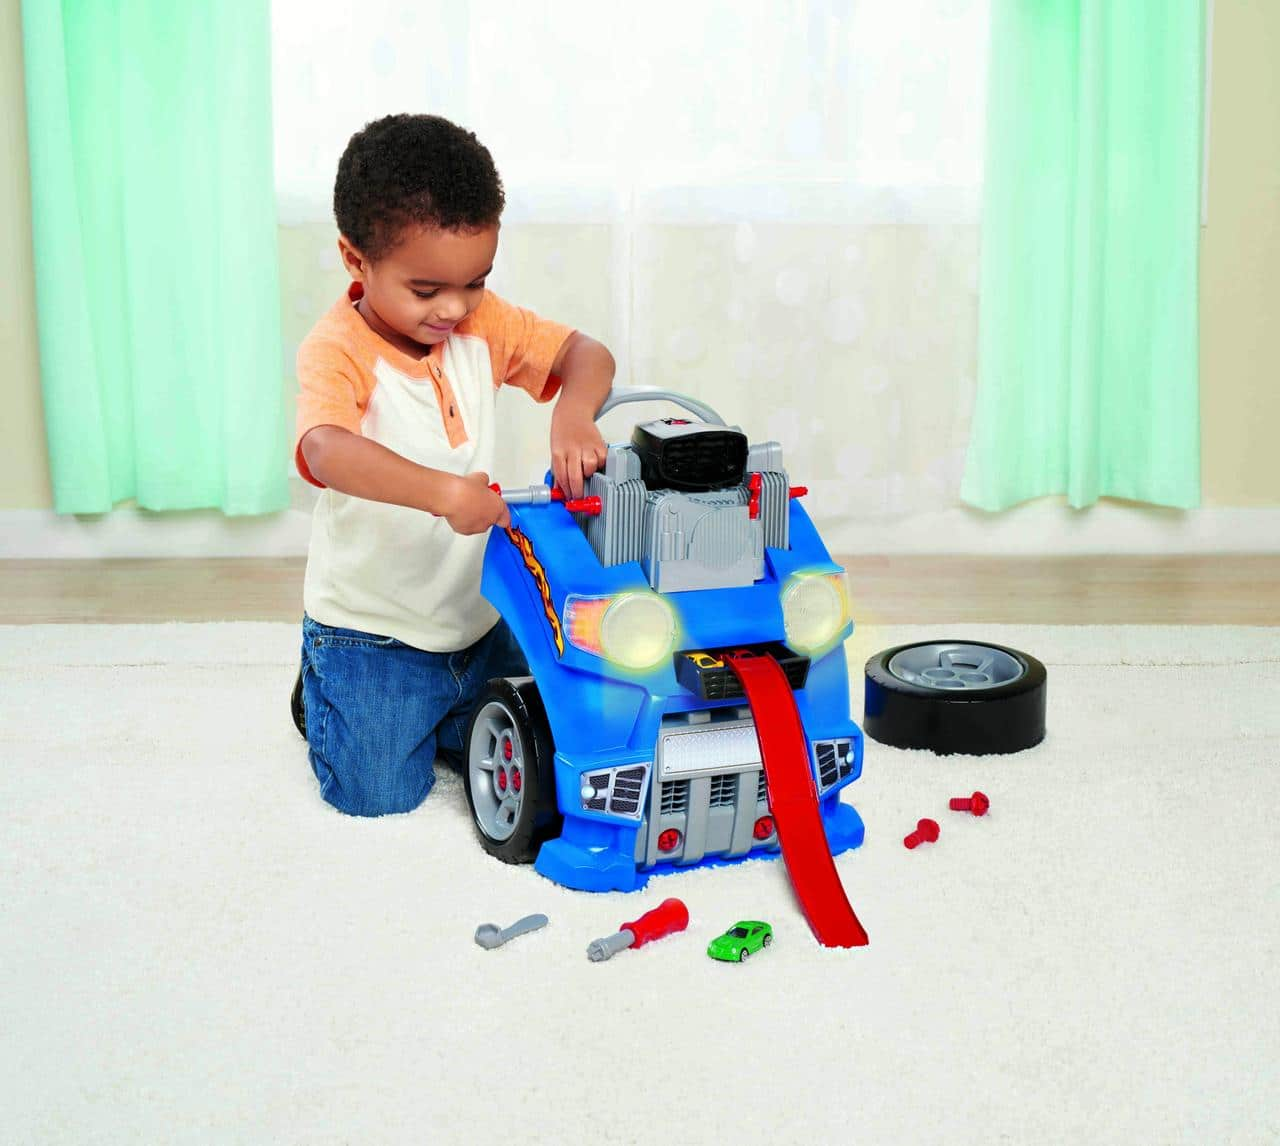 Walmart In Store Only: Kid Connection Car Engine and Race Track Set $4 YMMV